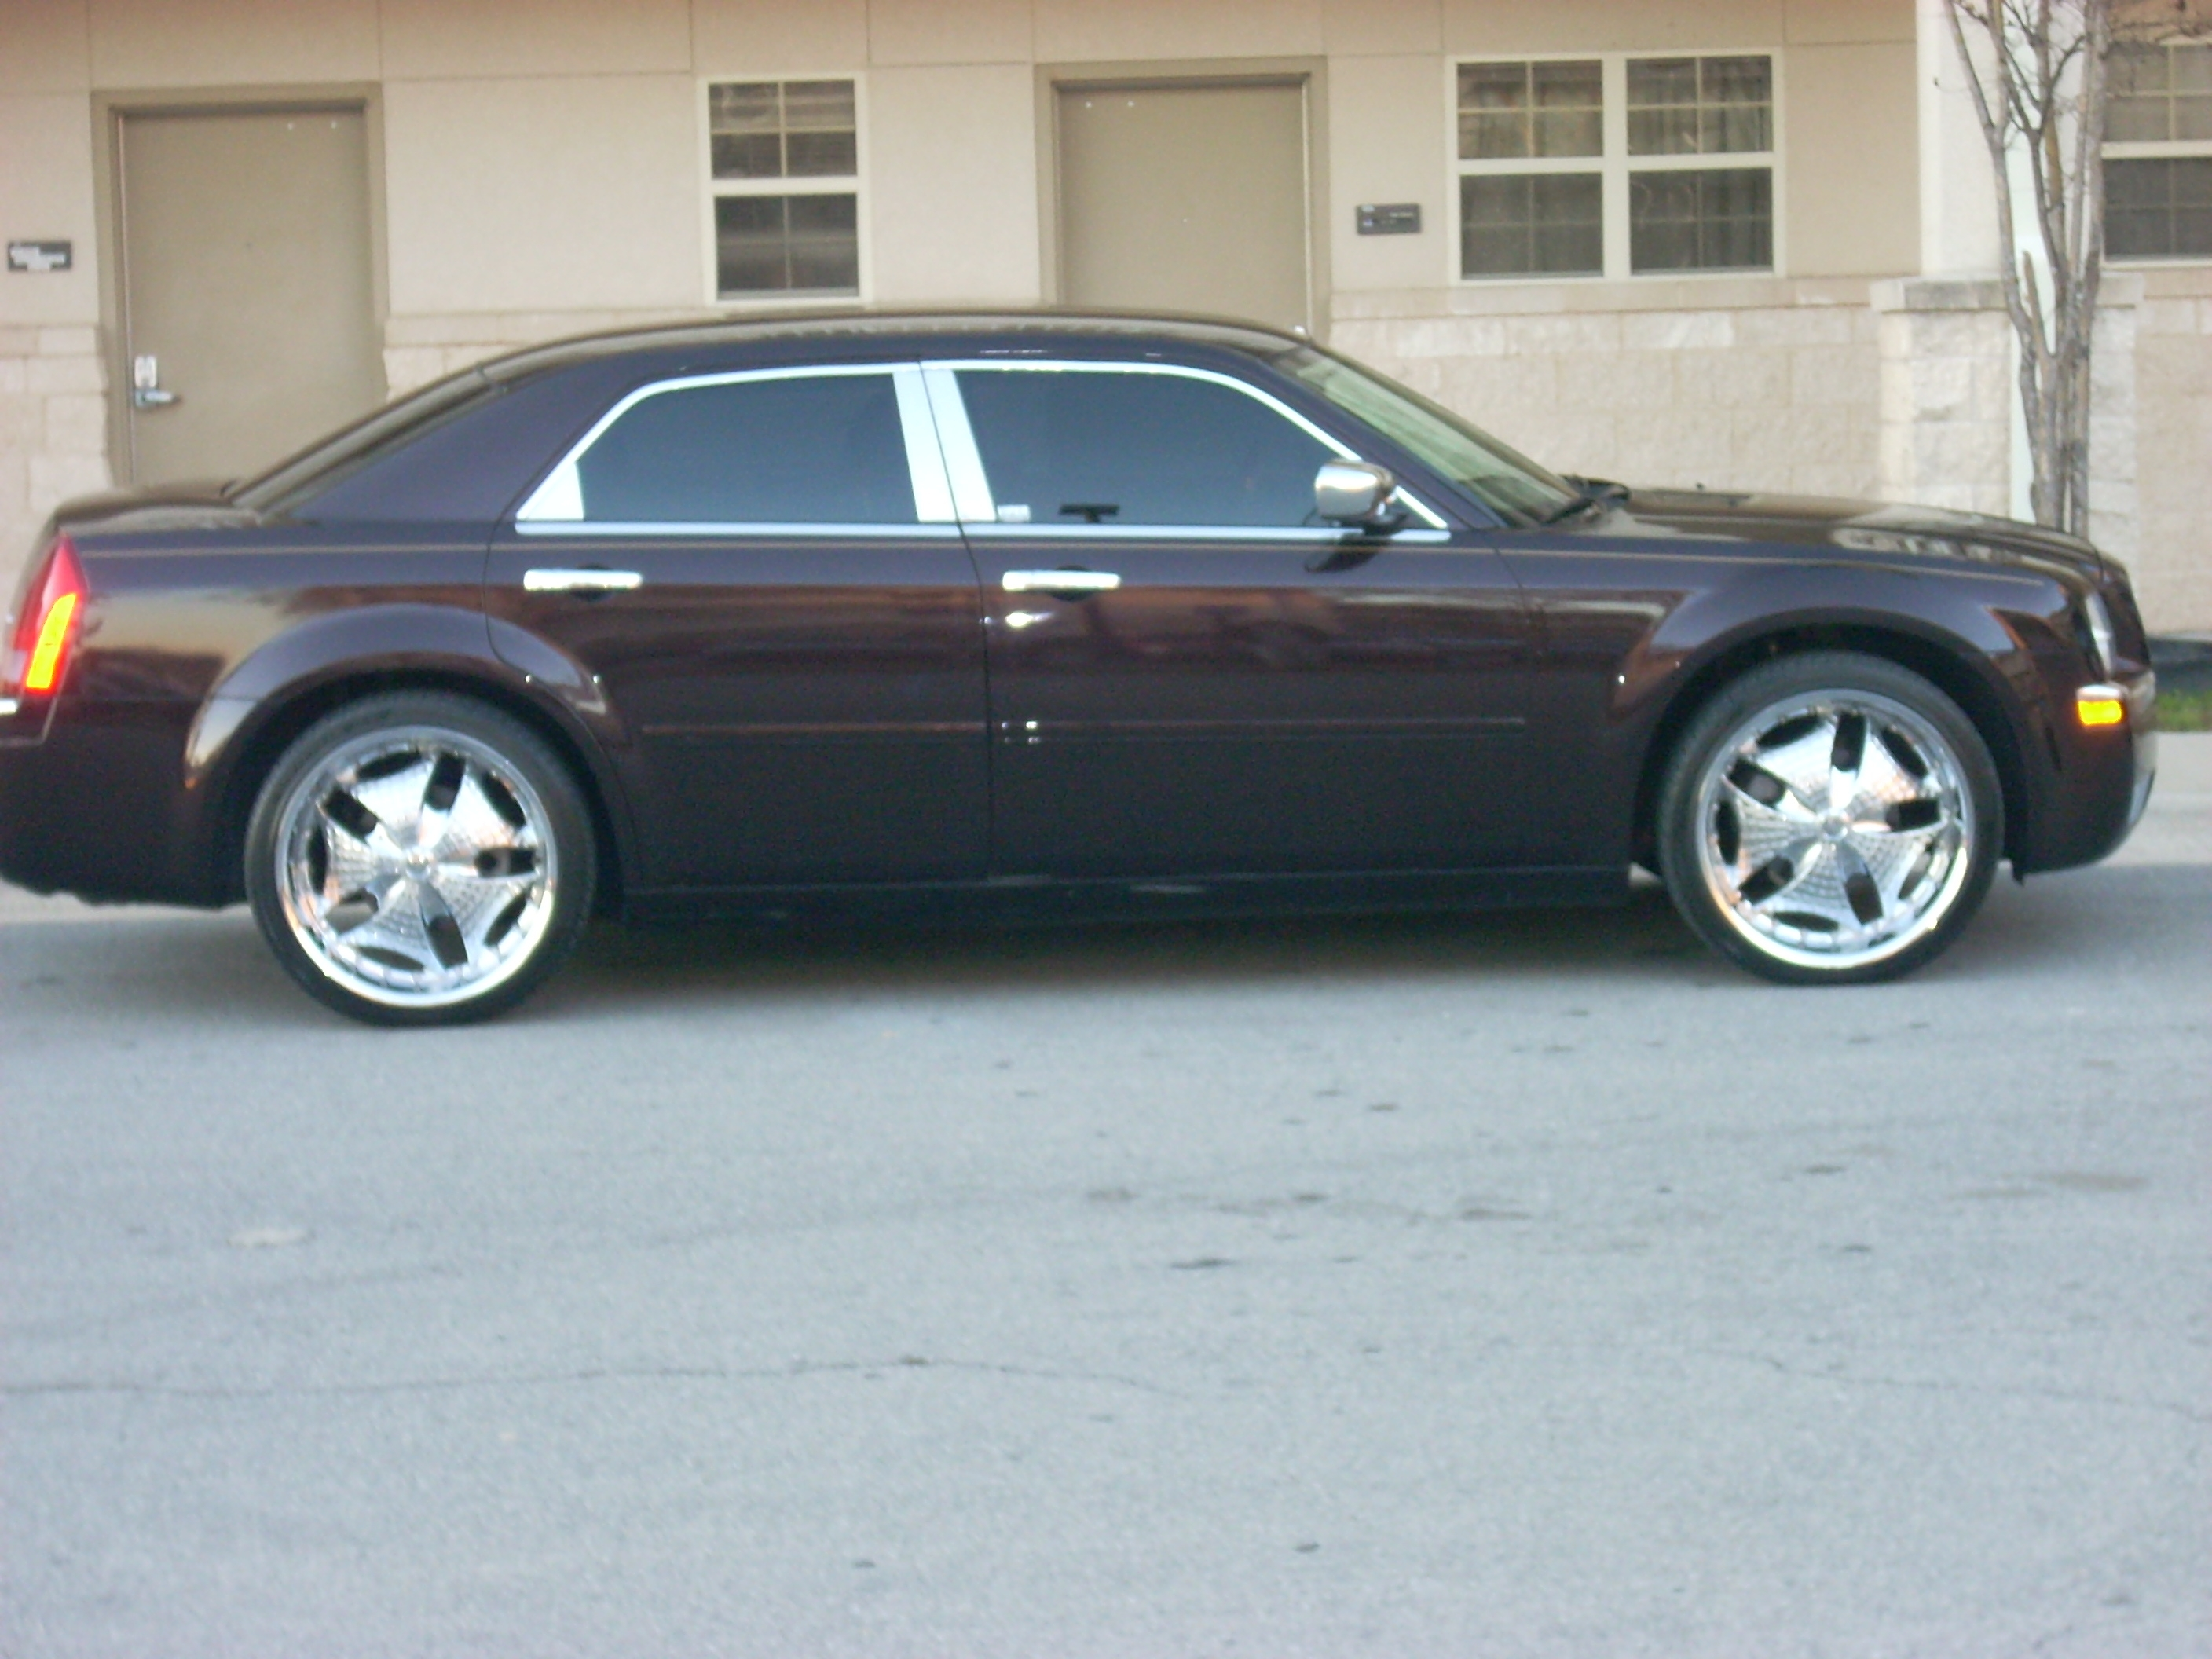 Manny_World 2005 Chrysler 300 14119398